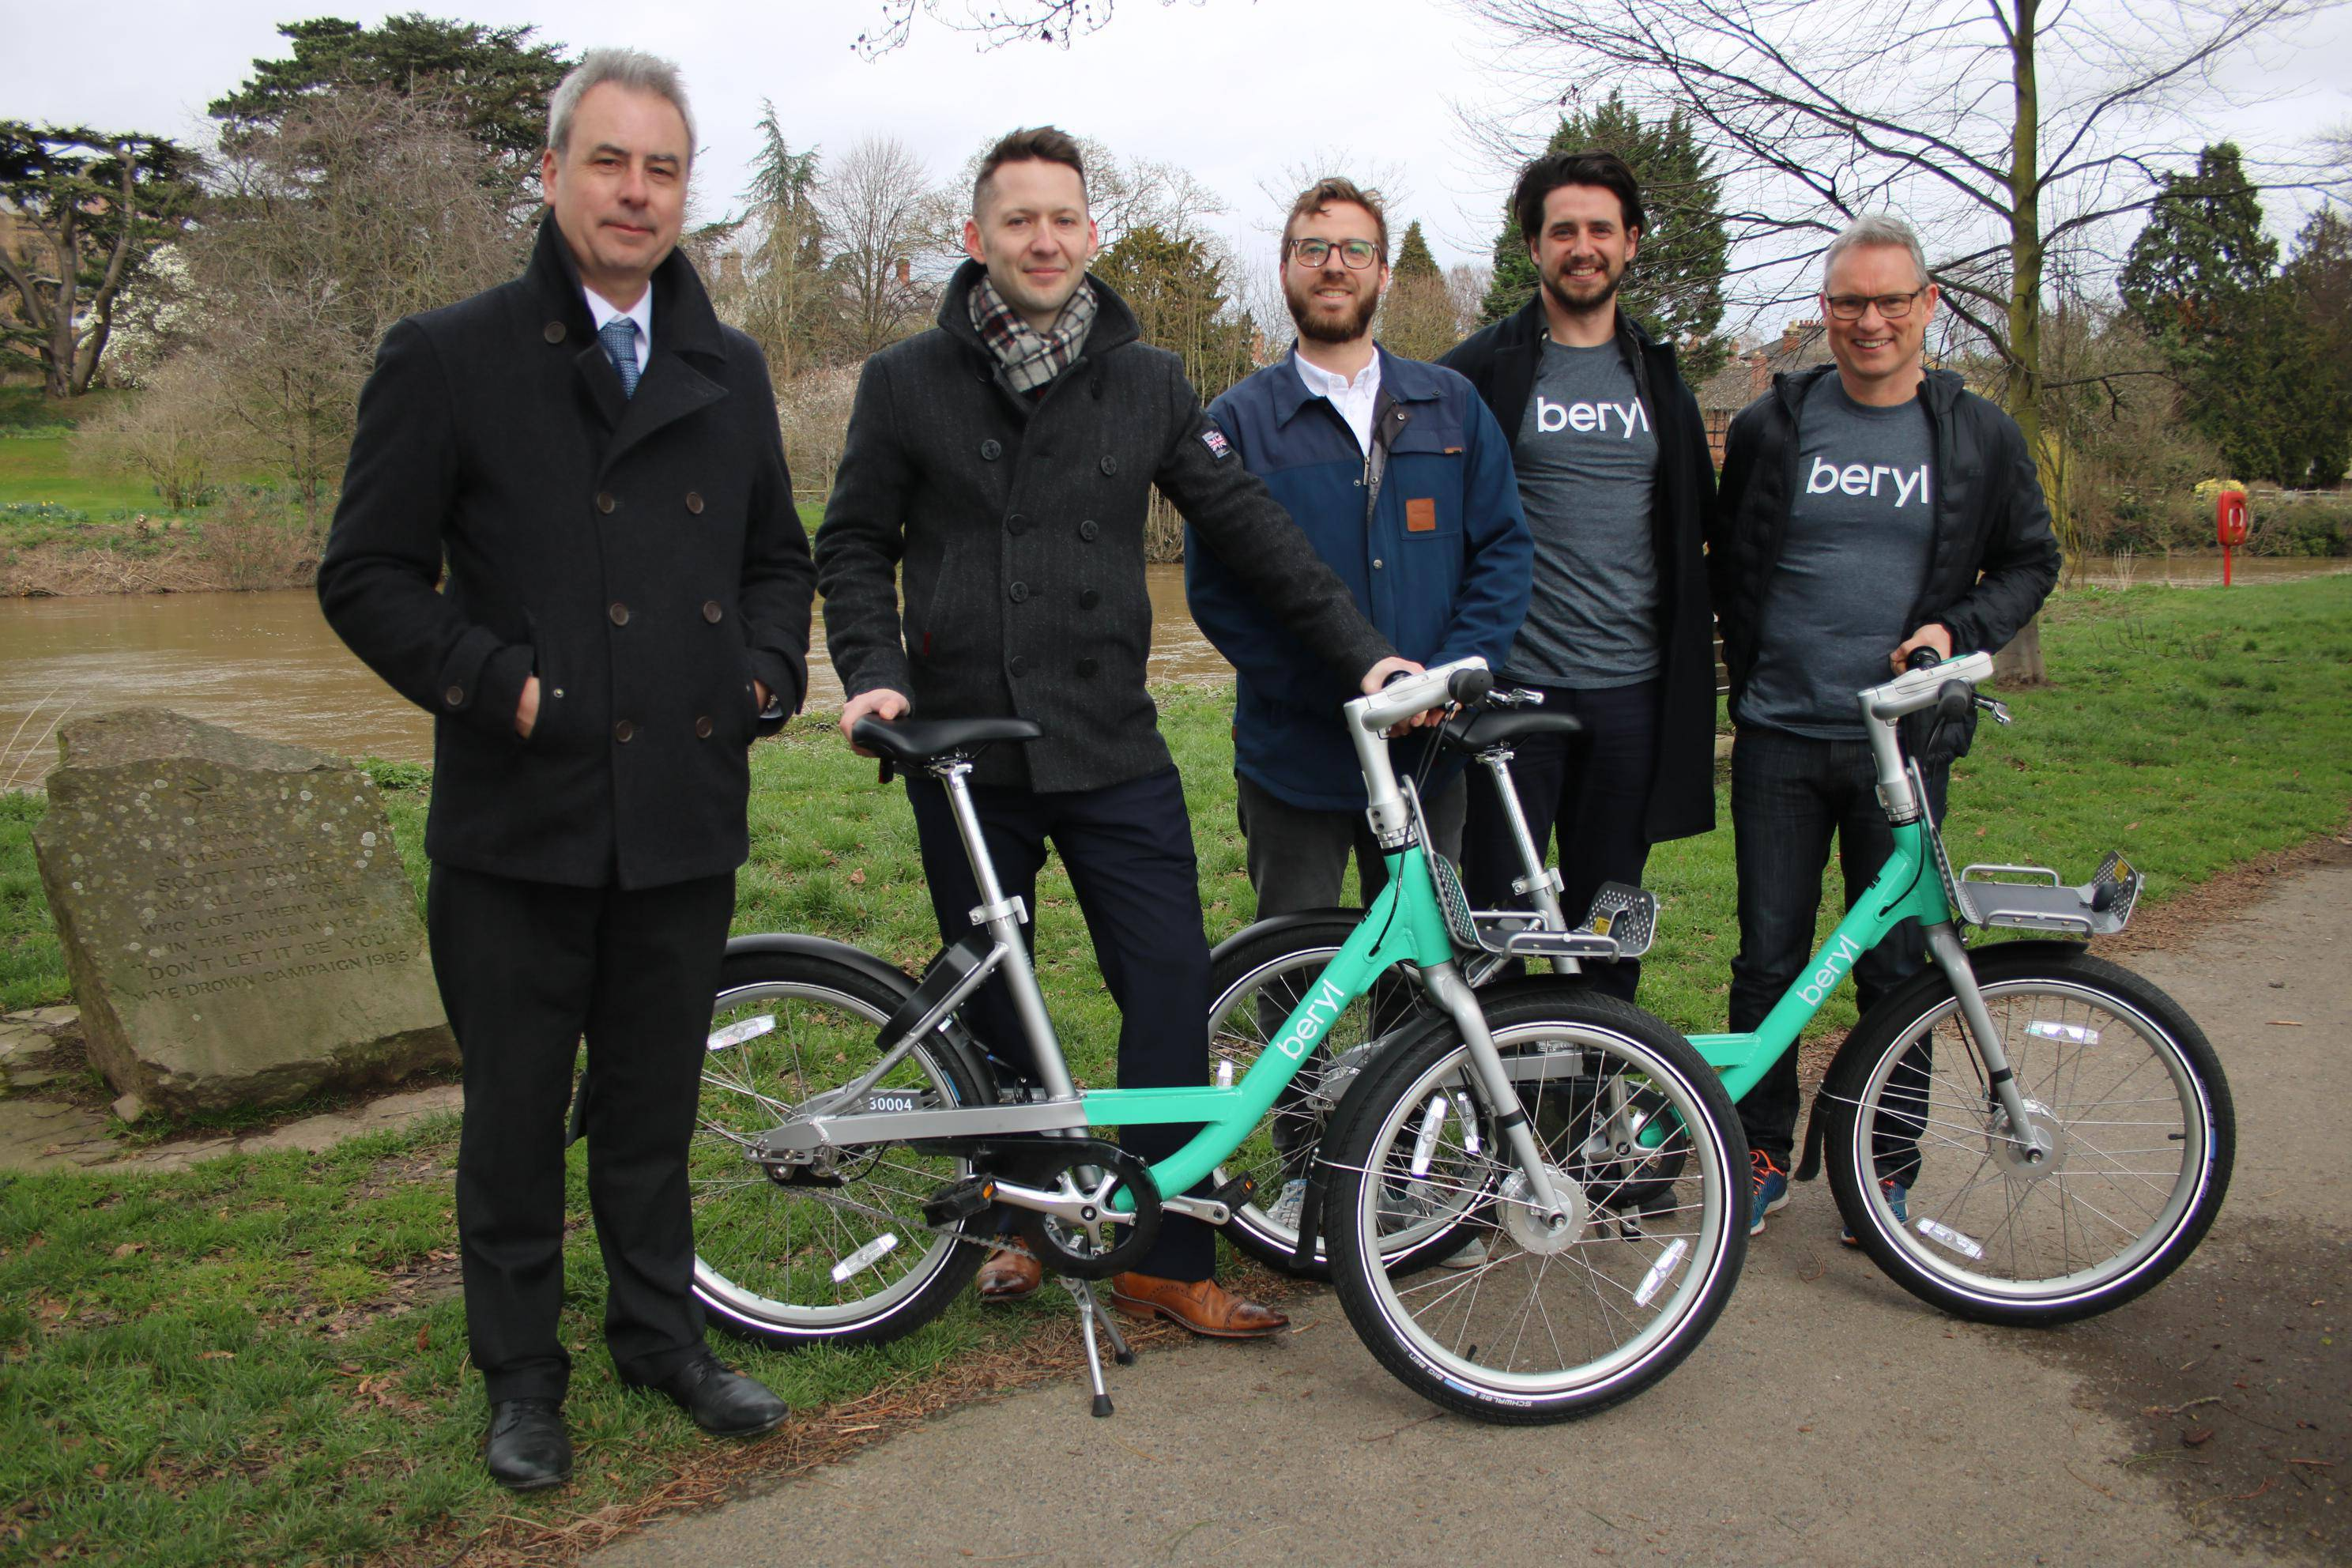 Travelling around Hereford by bicycle will soon become easier, thanks to the introduction of a bike share scheme in the city